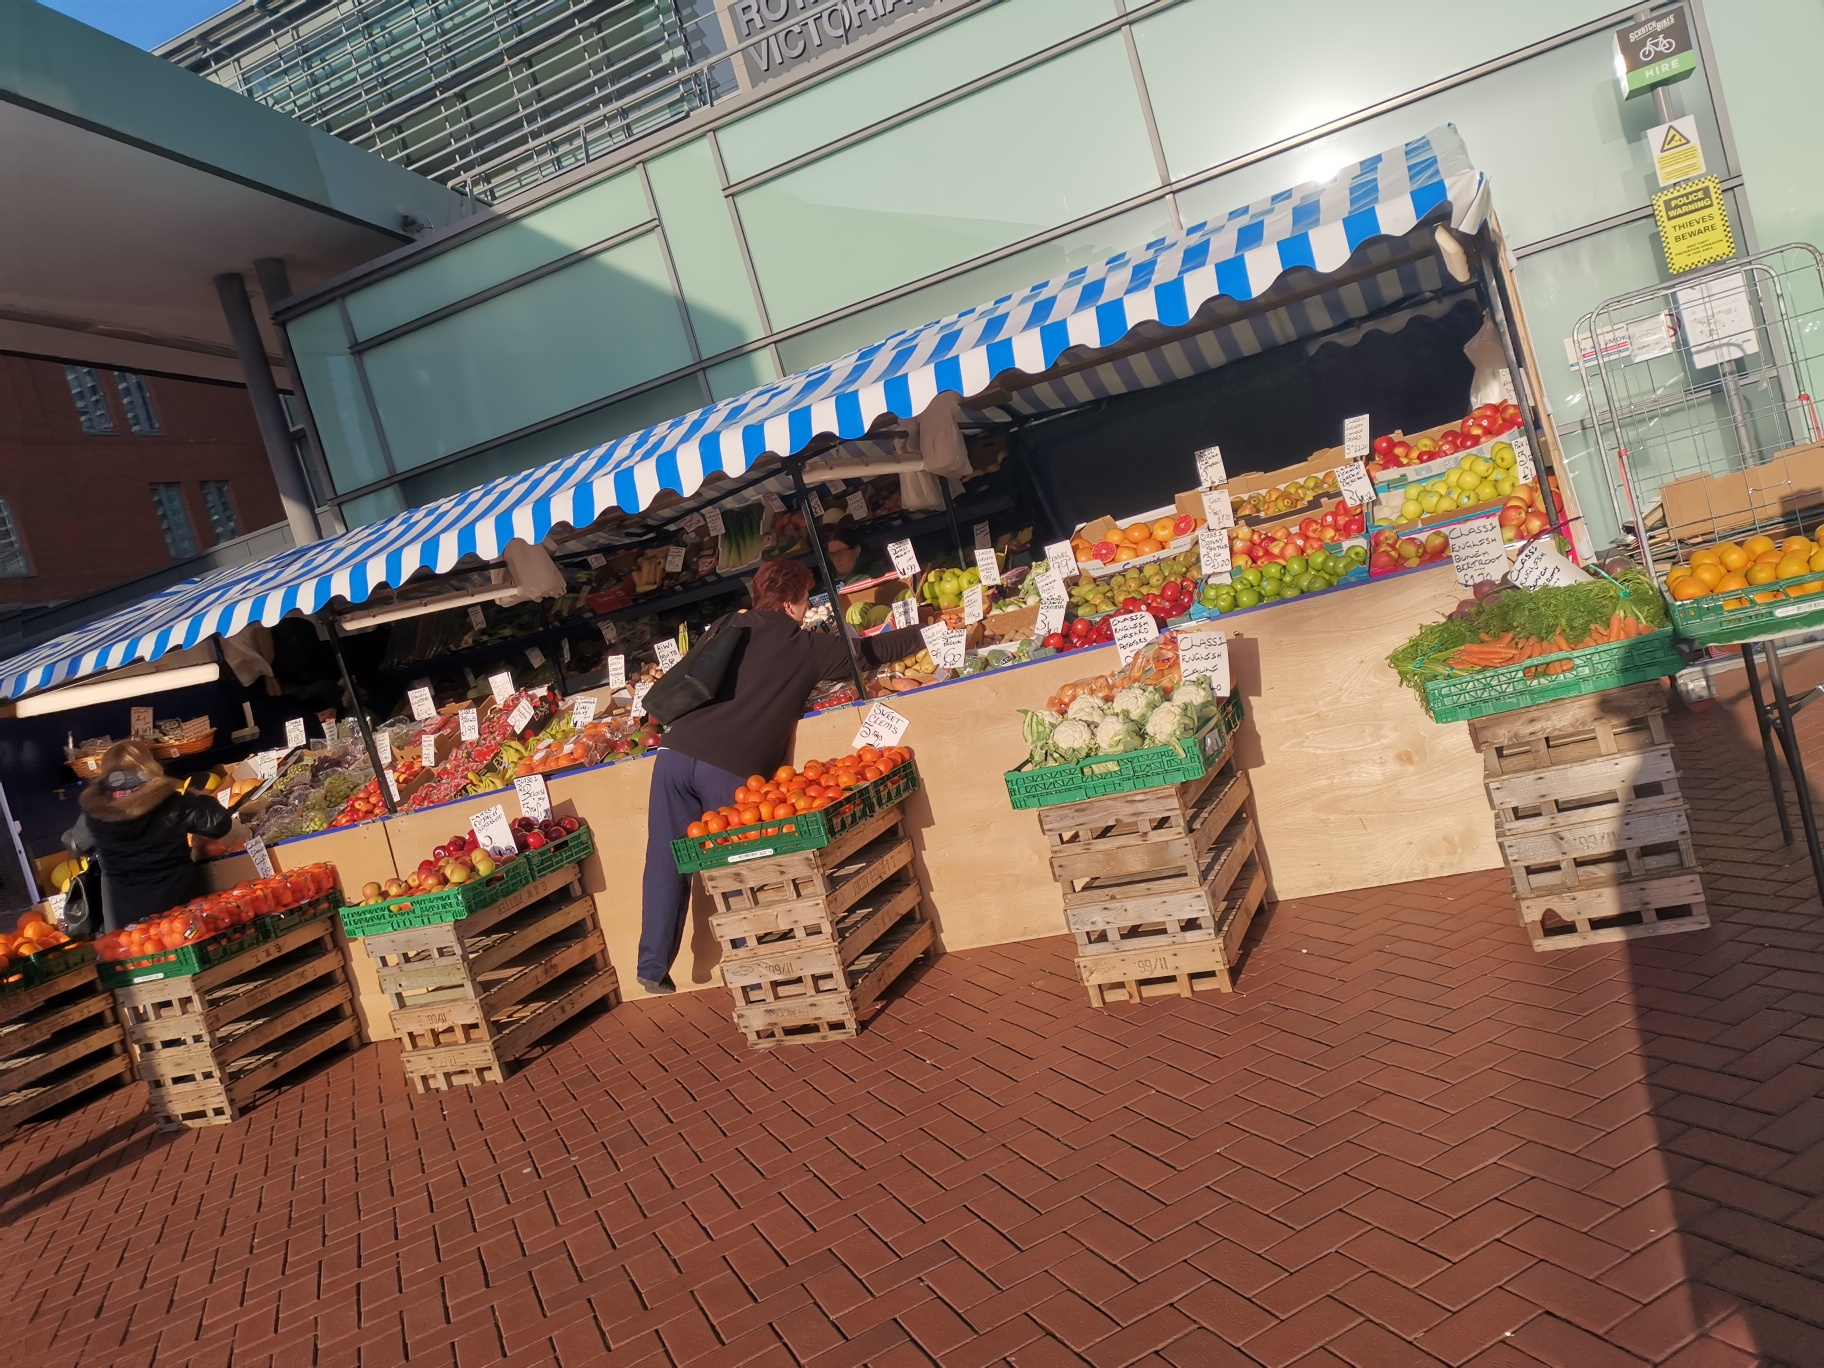 Photograph of fruit and vegetable stall